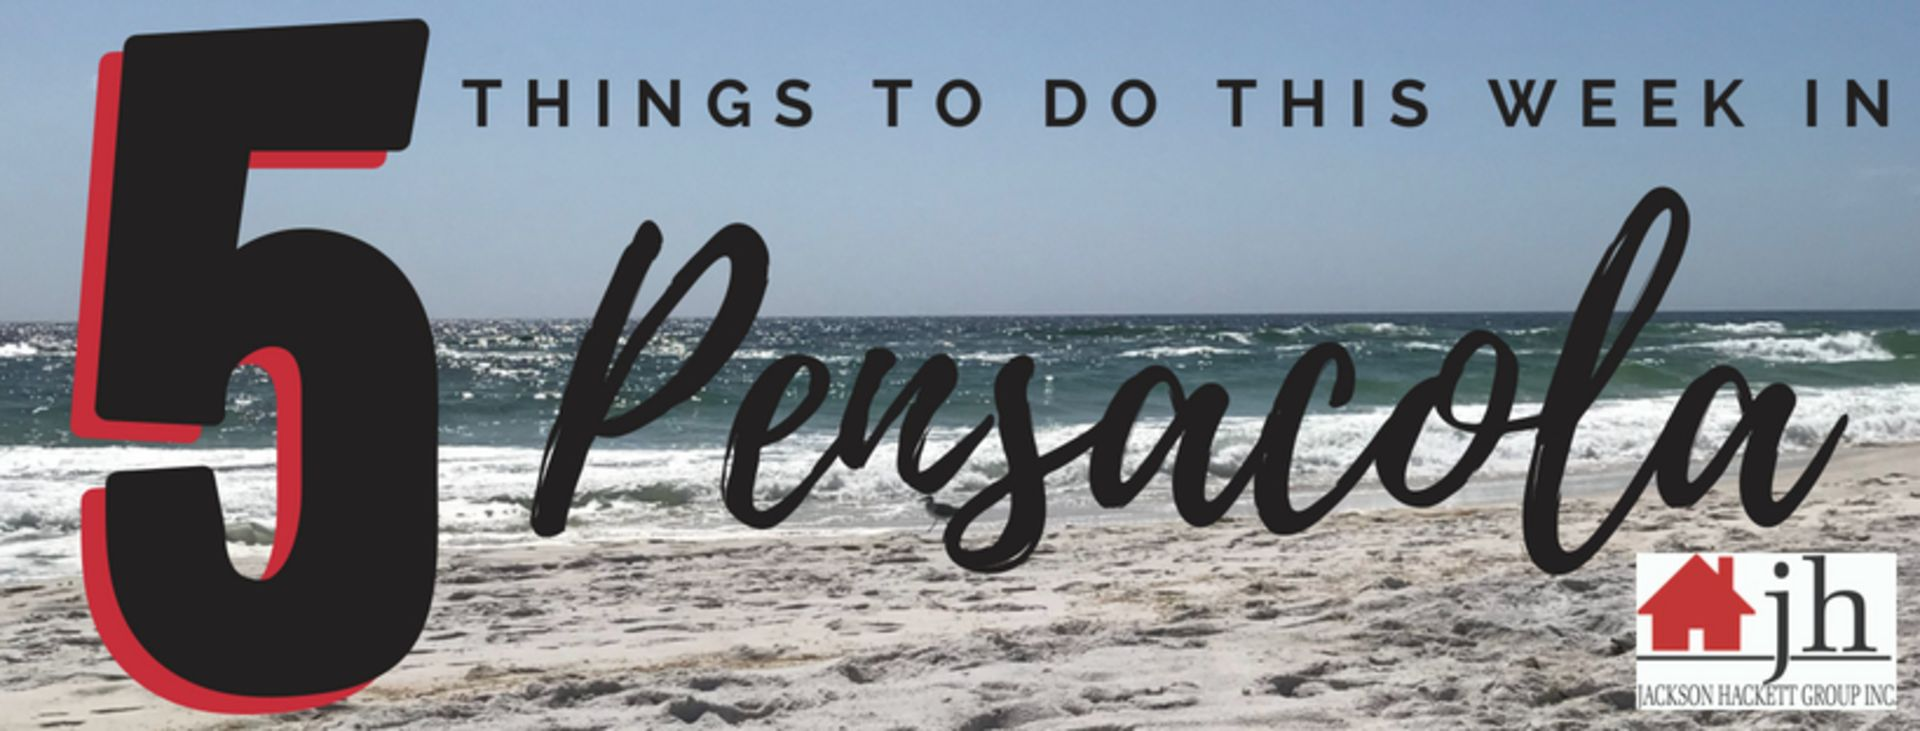 2-Minute Tuesday – 5 Things To Do This Week In Pensacola